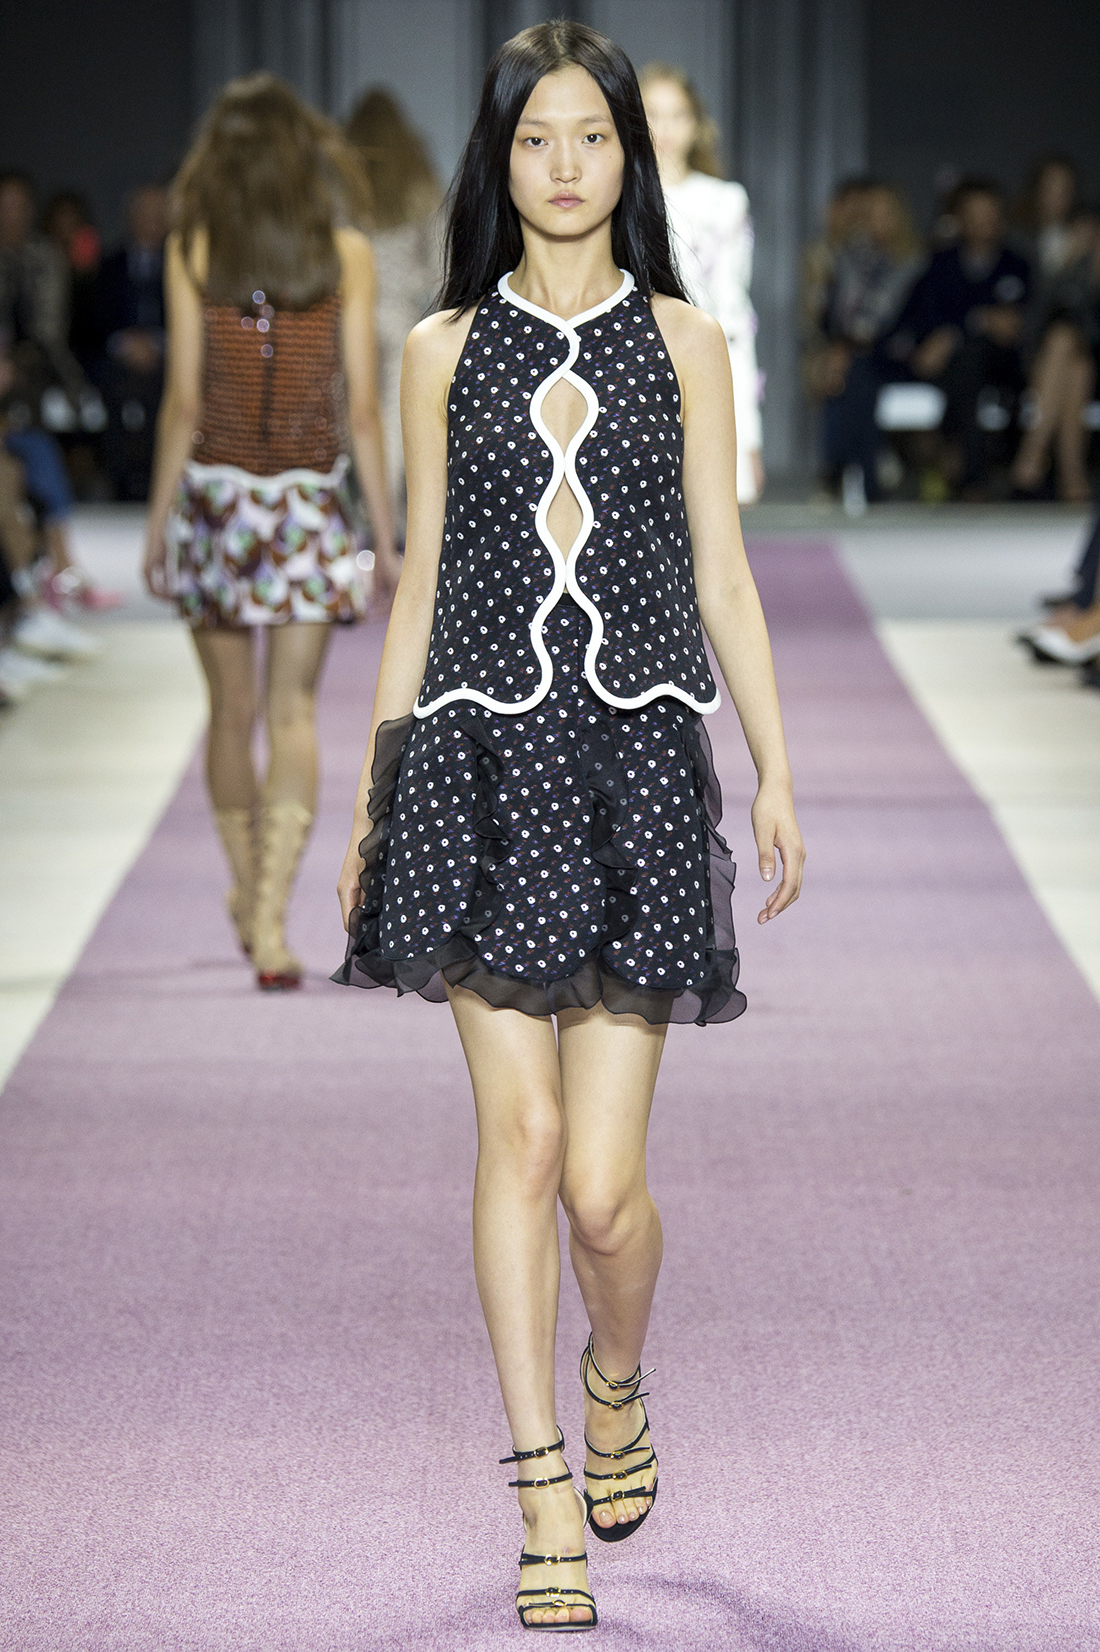 trend-flamenco-polka-dots-20